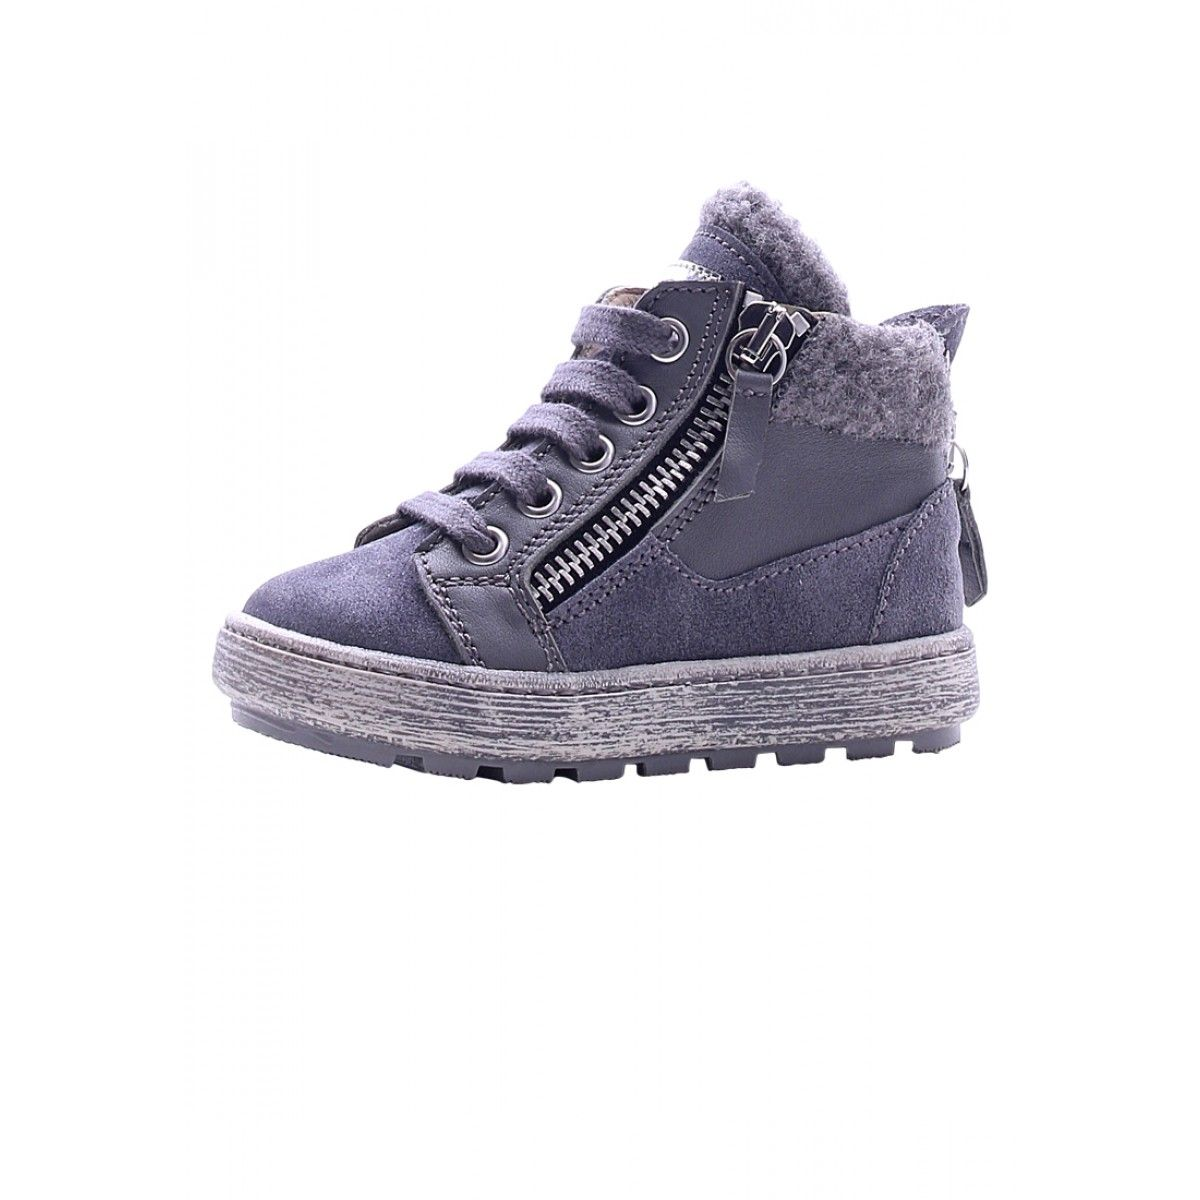 NATURINO 4197 - Leather sneakers – Grey - Sneakers - Girl